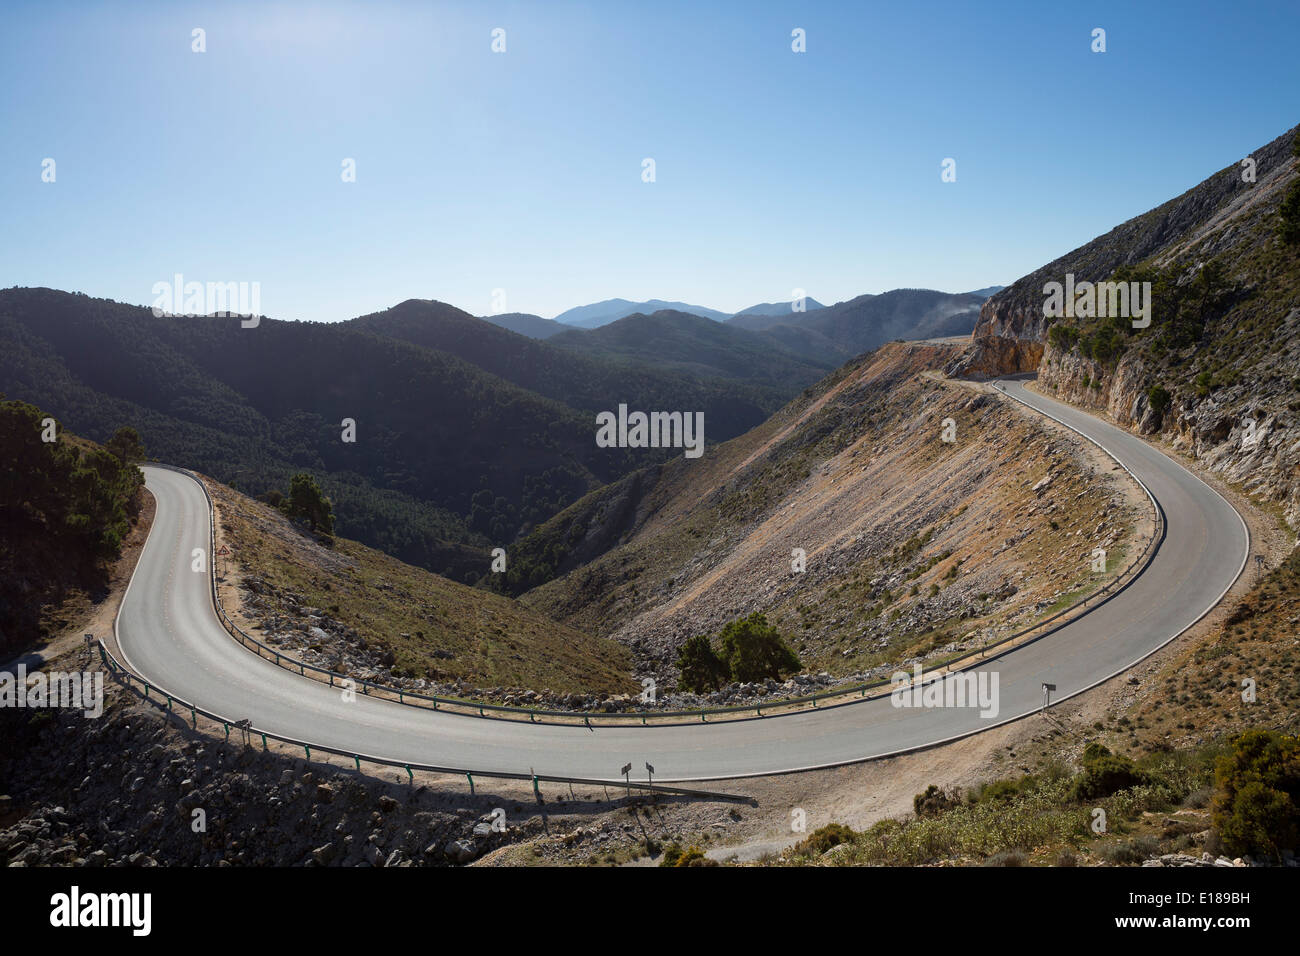 View of mountains and winding road - Stock Image